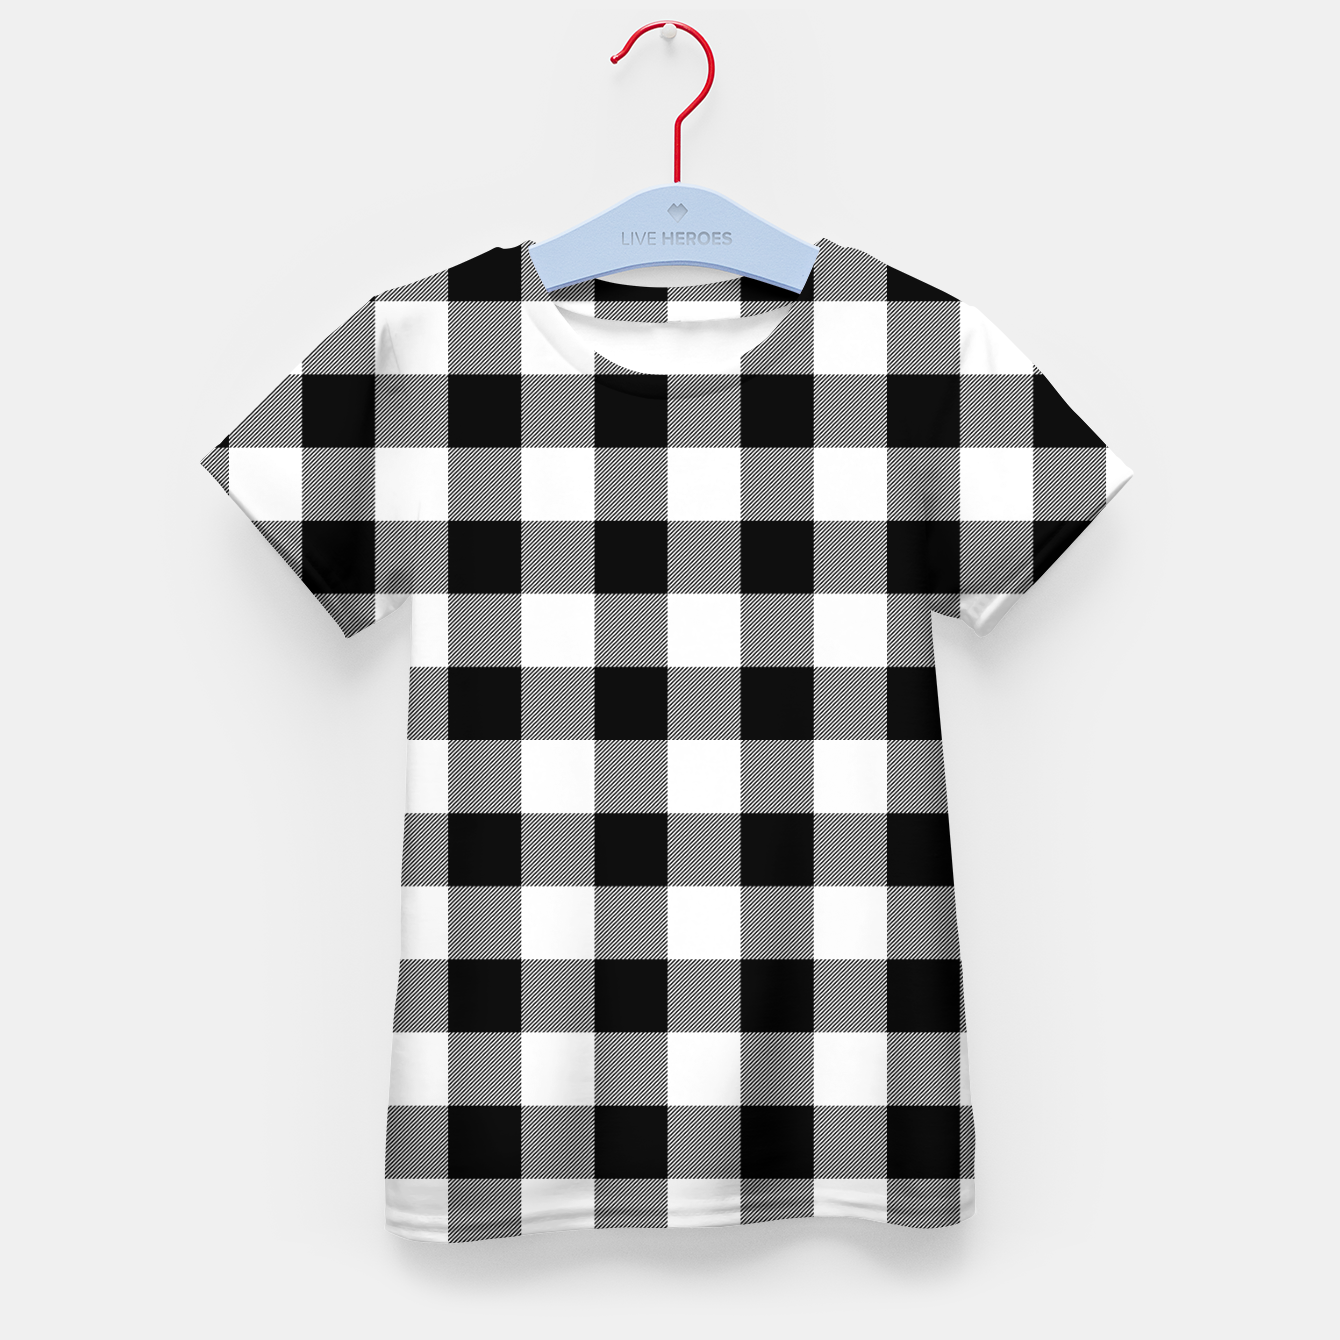 Imagen de Large Size Black and White Western Cowboy Buffalo Check Gingham Kid's t-shirt - Live Heroes